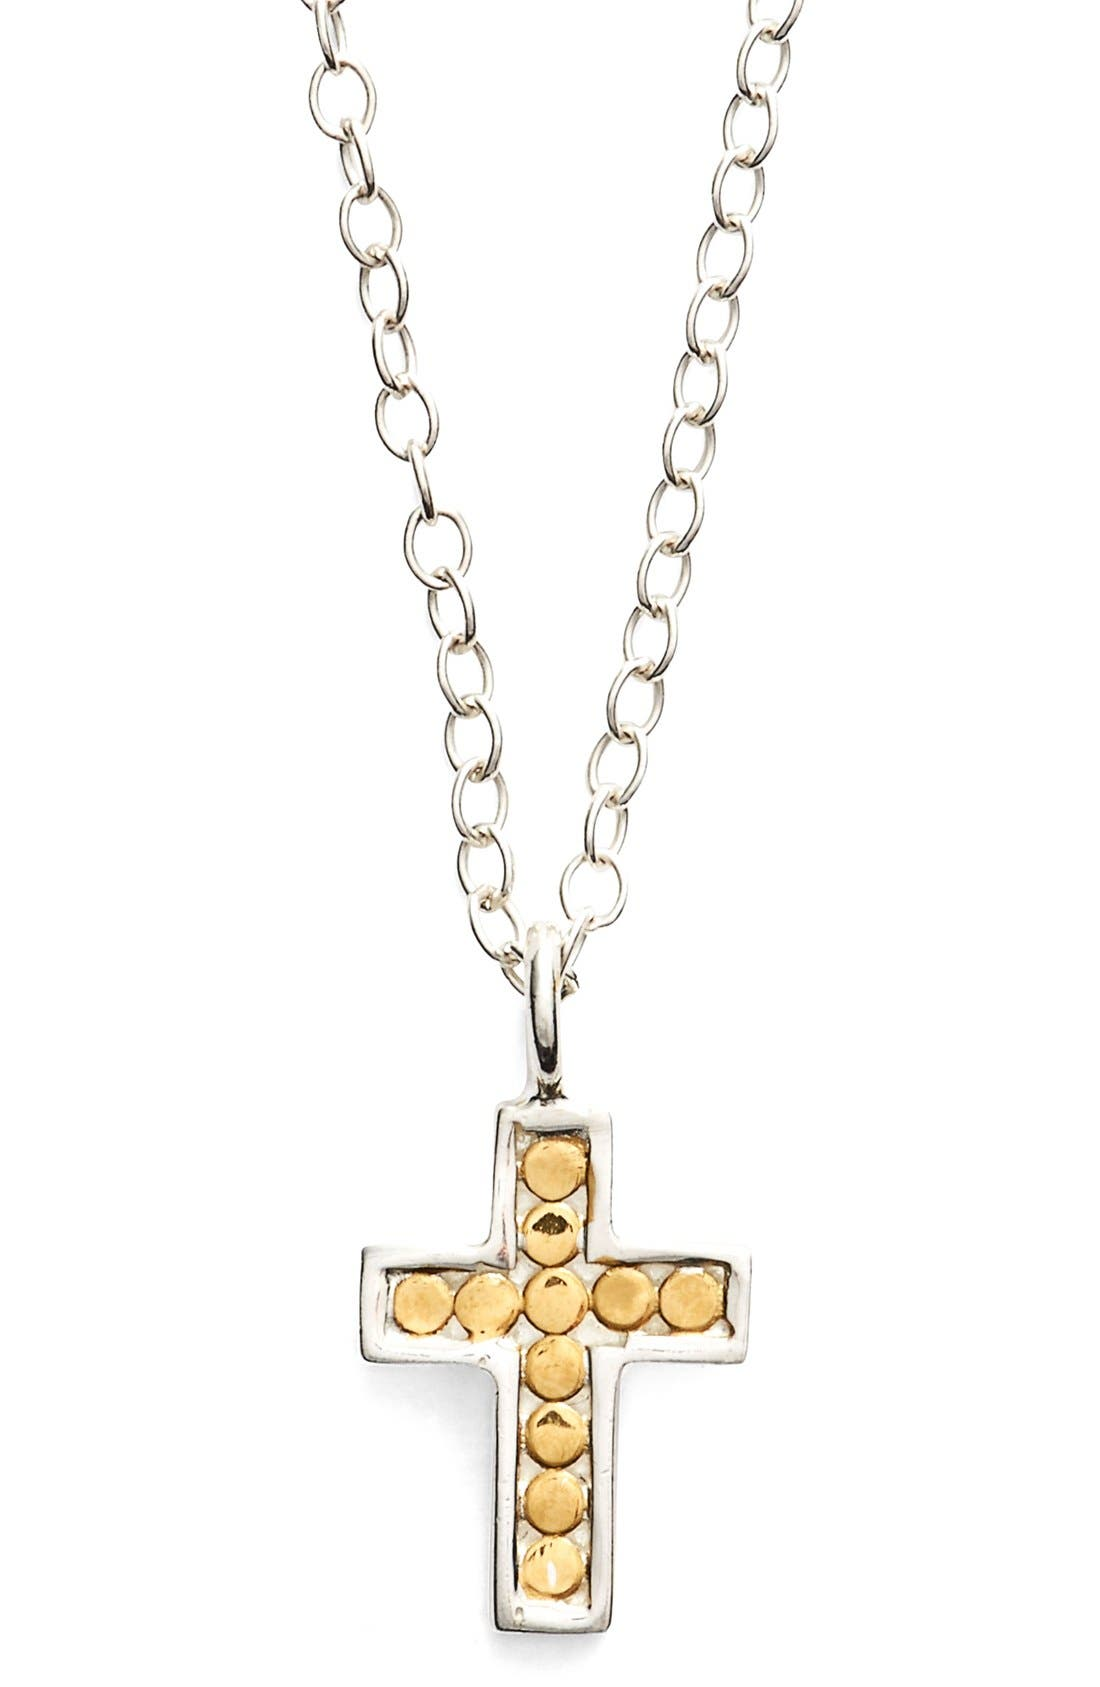 Main Image - Anna Beck 'Gili' Reversible Mini Cross Necklace